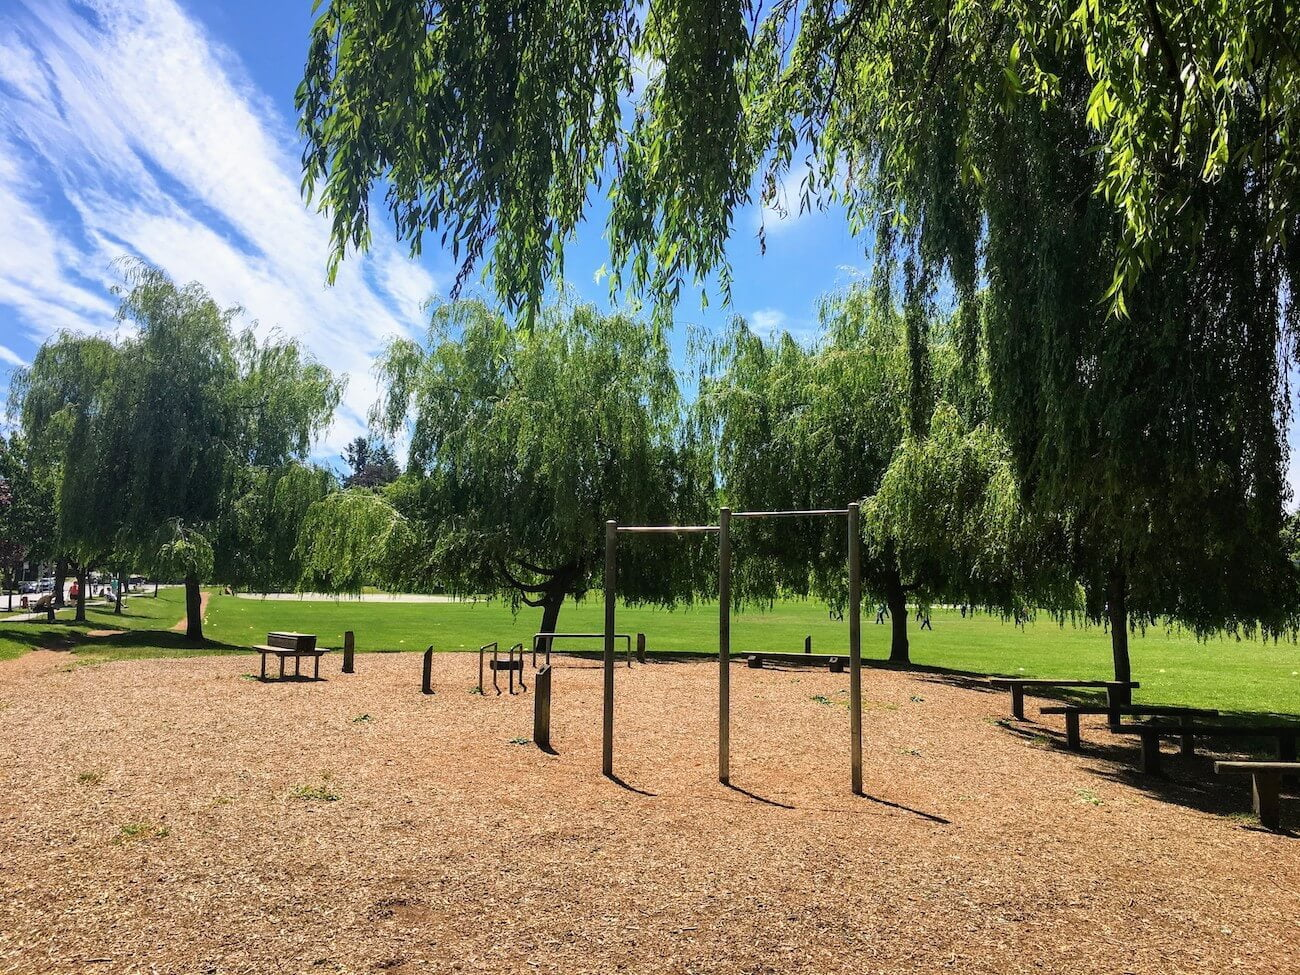 Douglas Park's calisthenics area on a beautiful June day in Vancouver